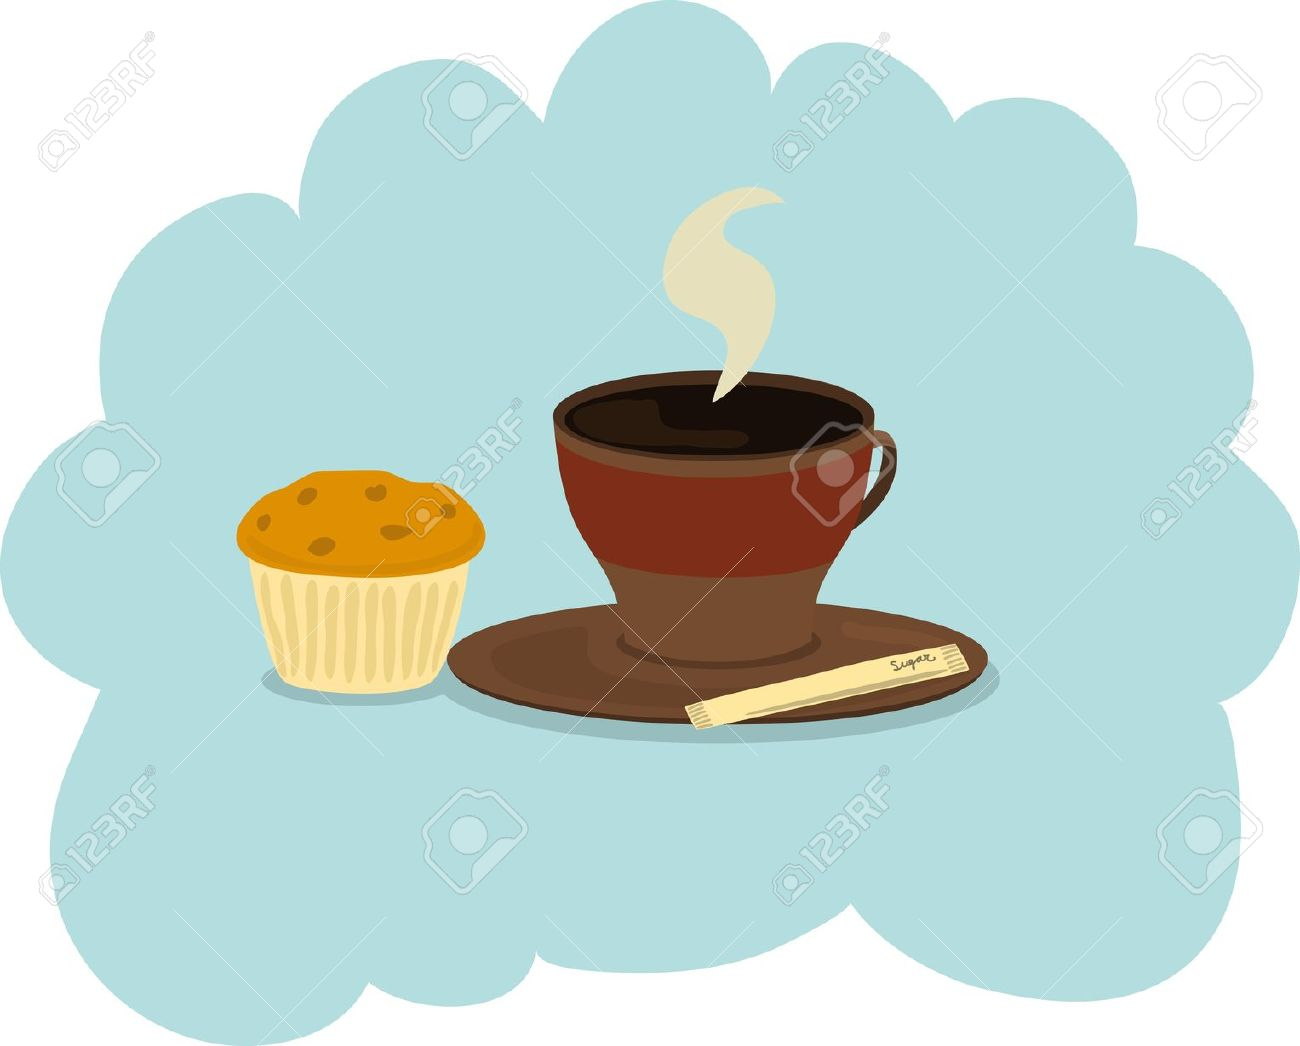 Coffee clipart muffin Coffee And Muffin Clipart cliparts